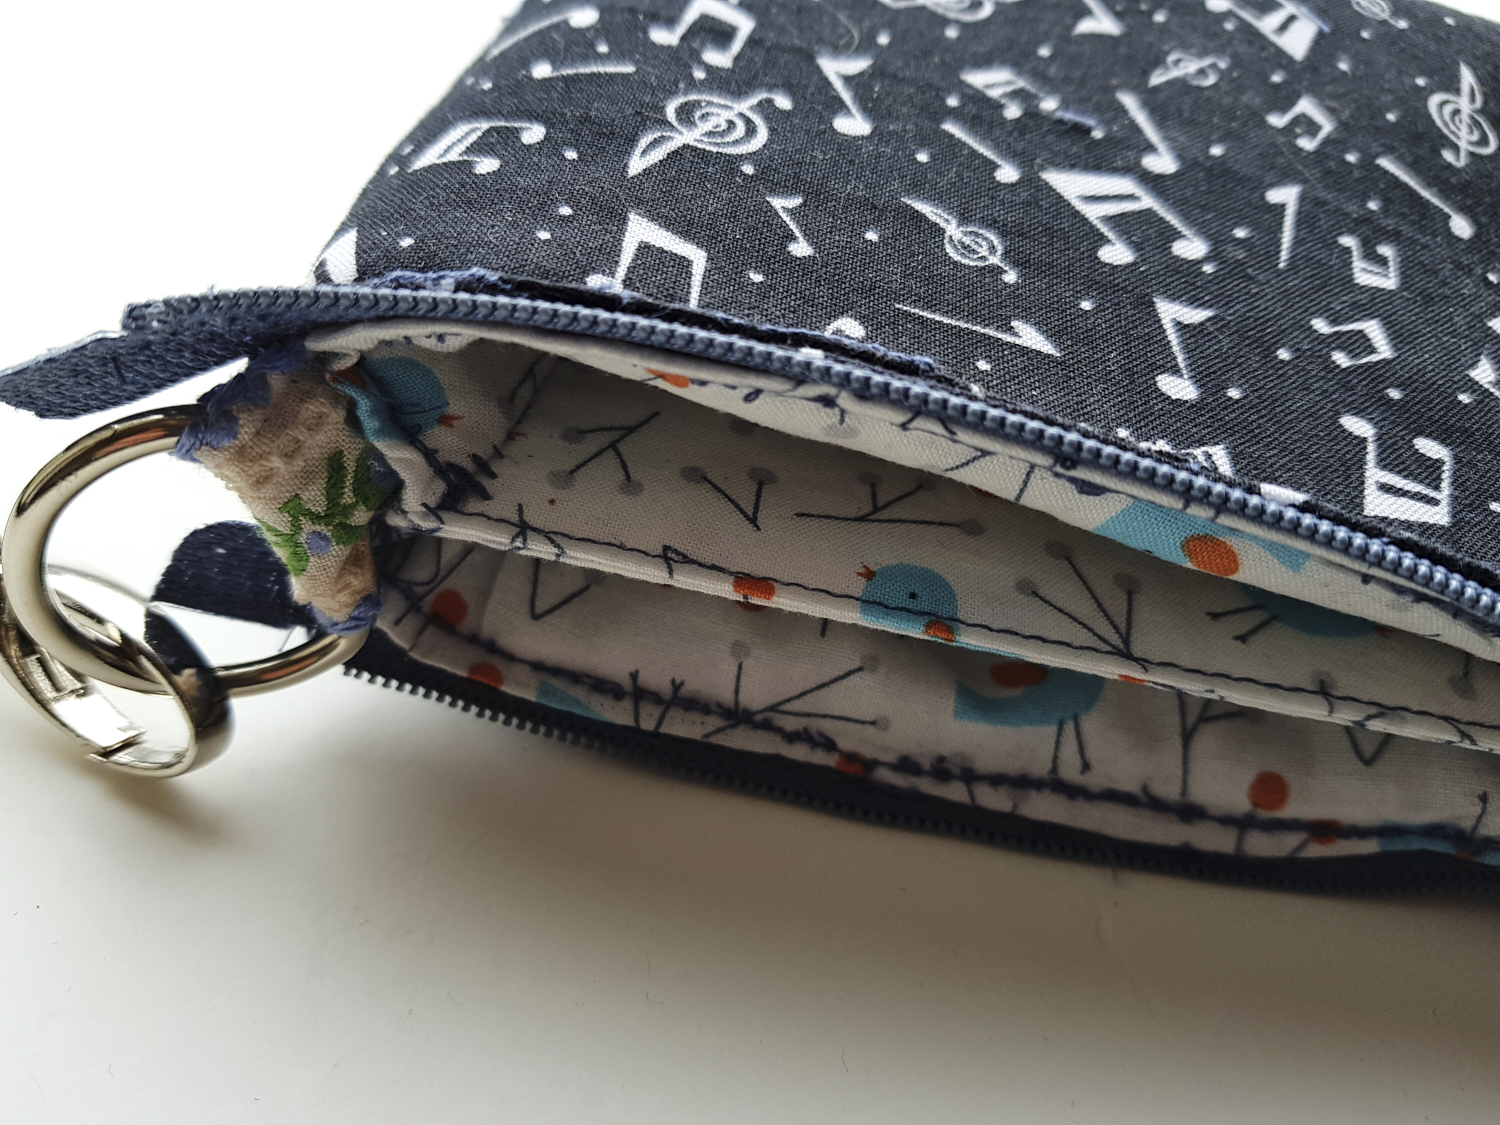 Musical pouch